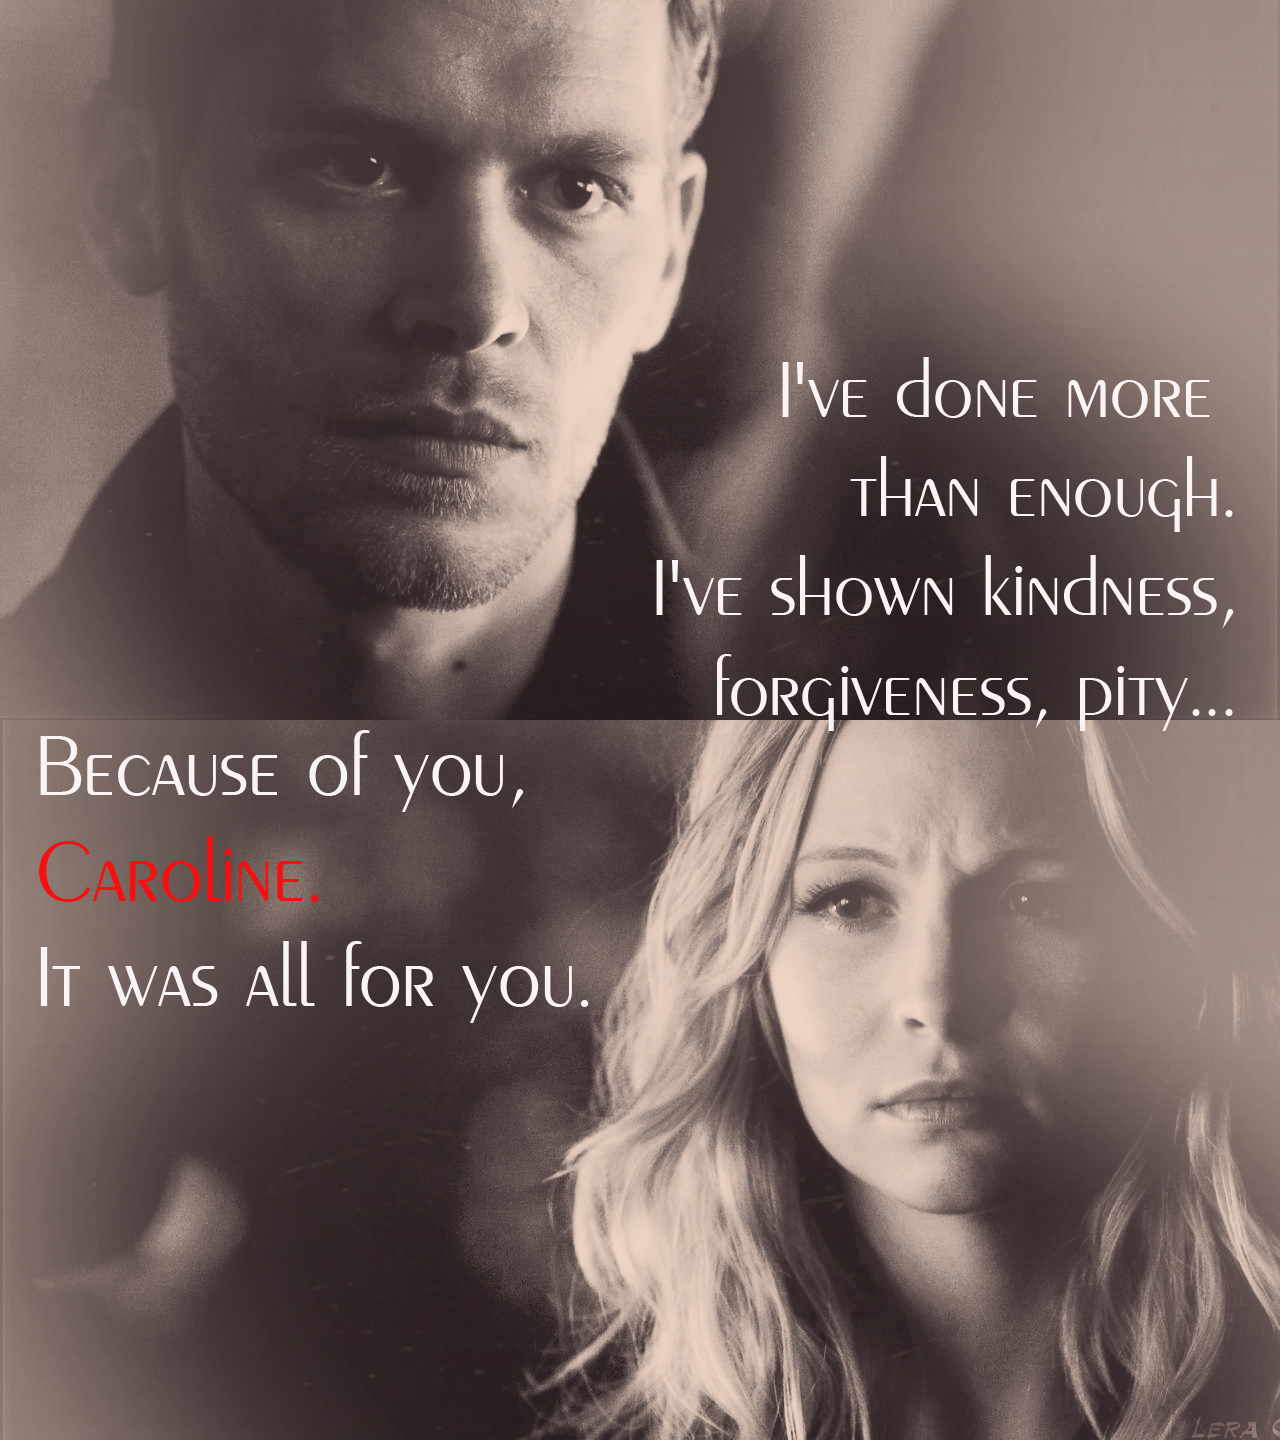 Klaus Caroline Images Ive Shown Kindness Forgiveness Pity